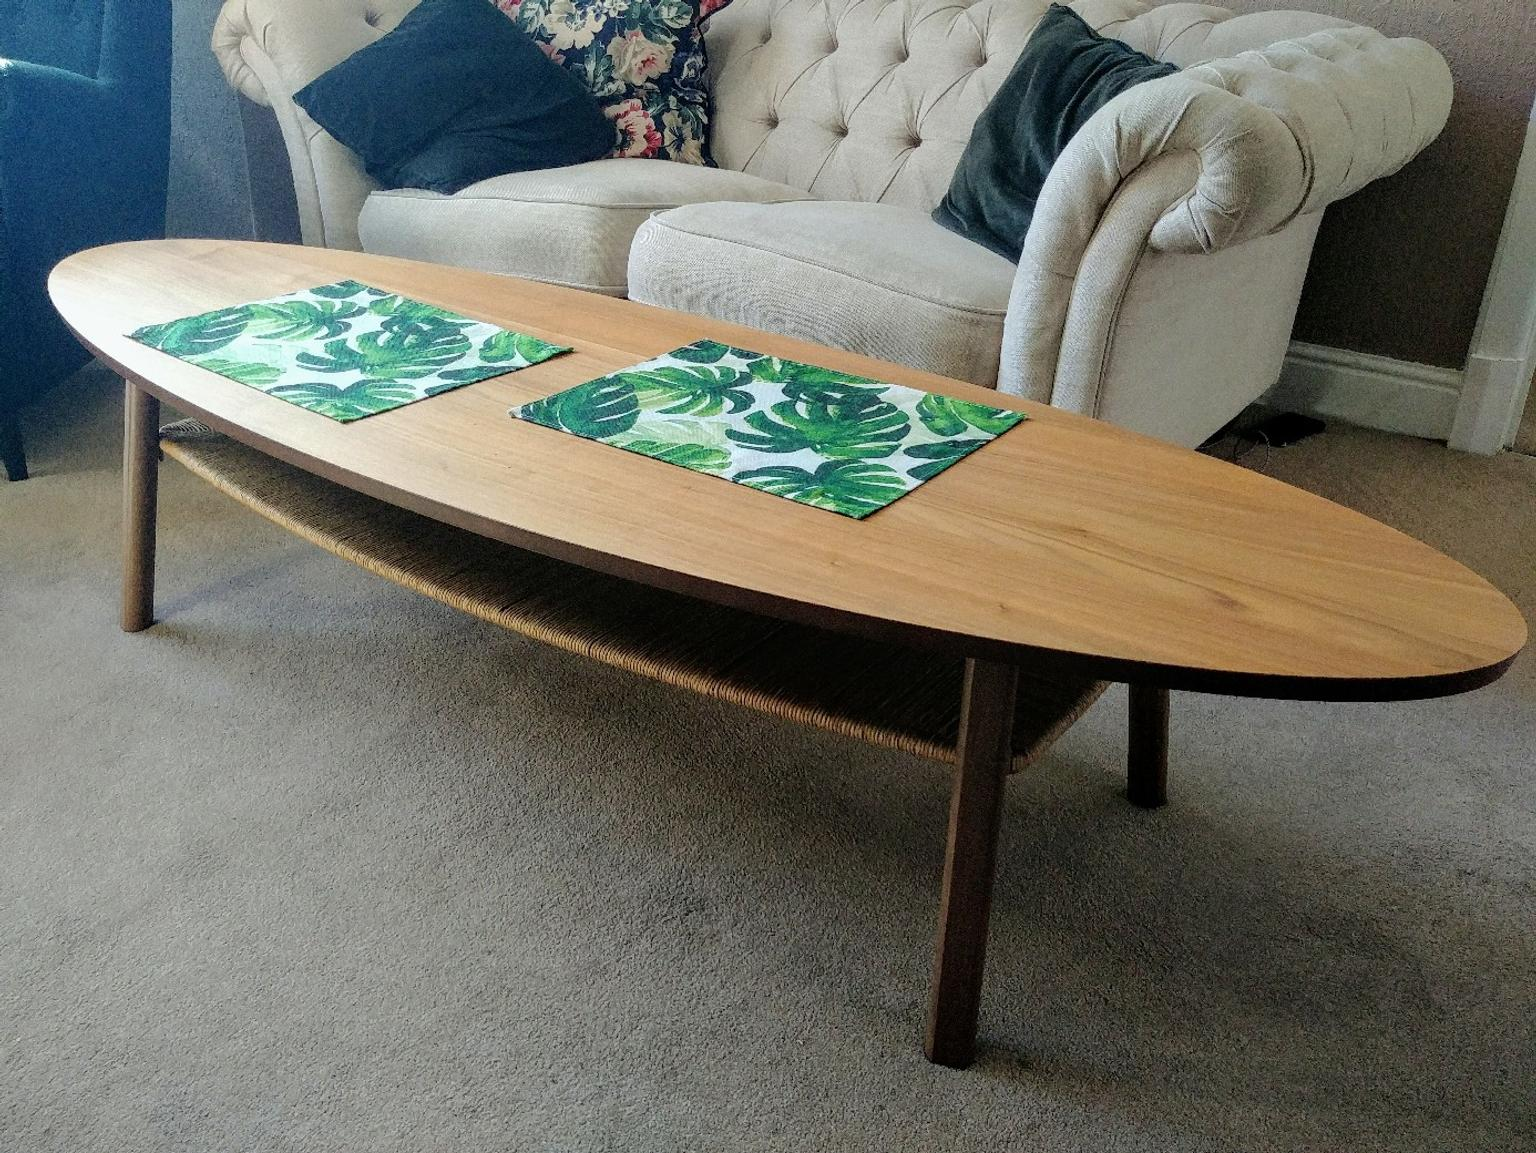 Ikea Stockholm Coffee Table In